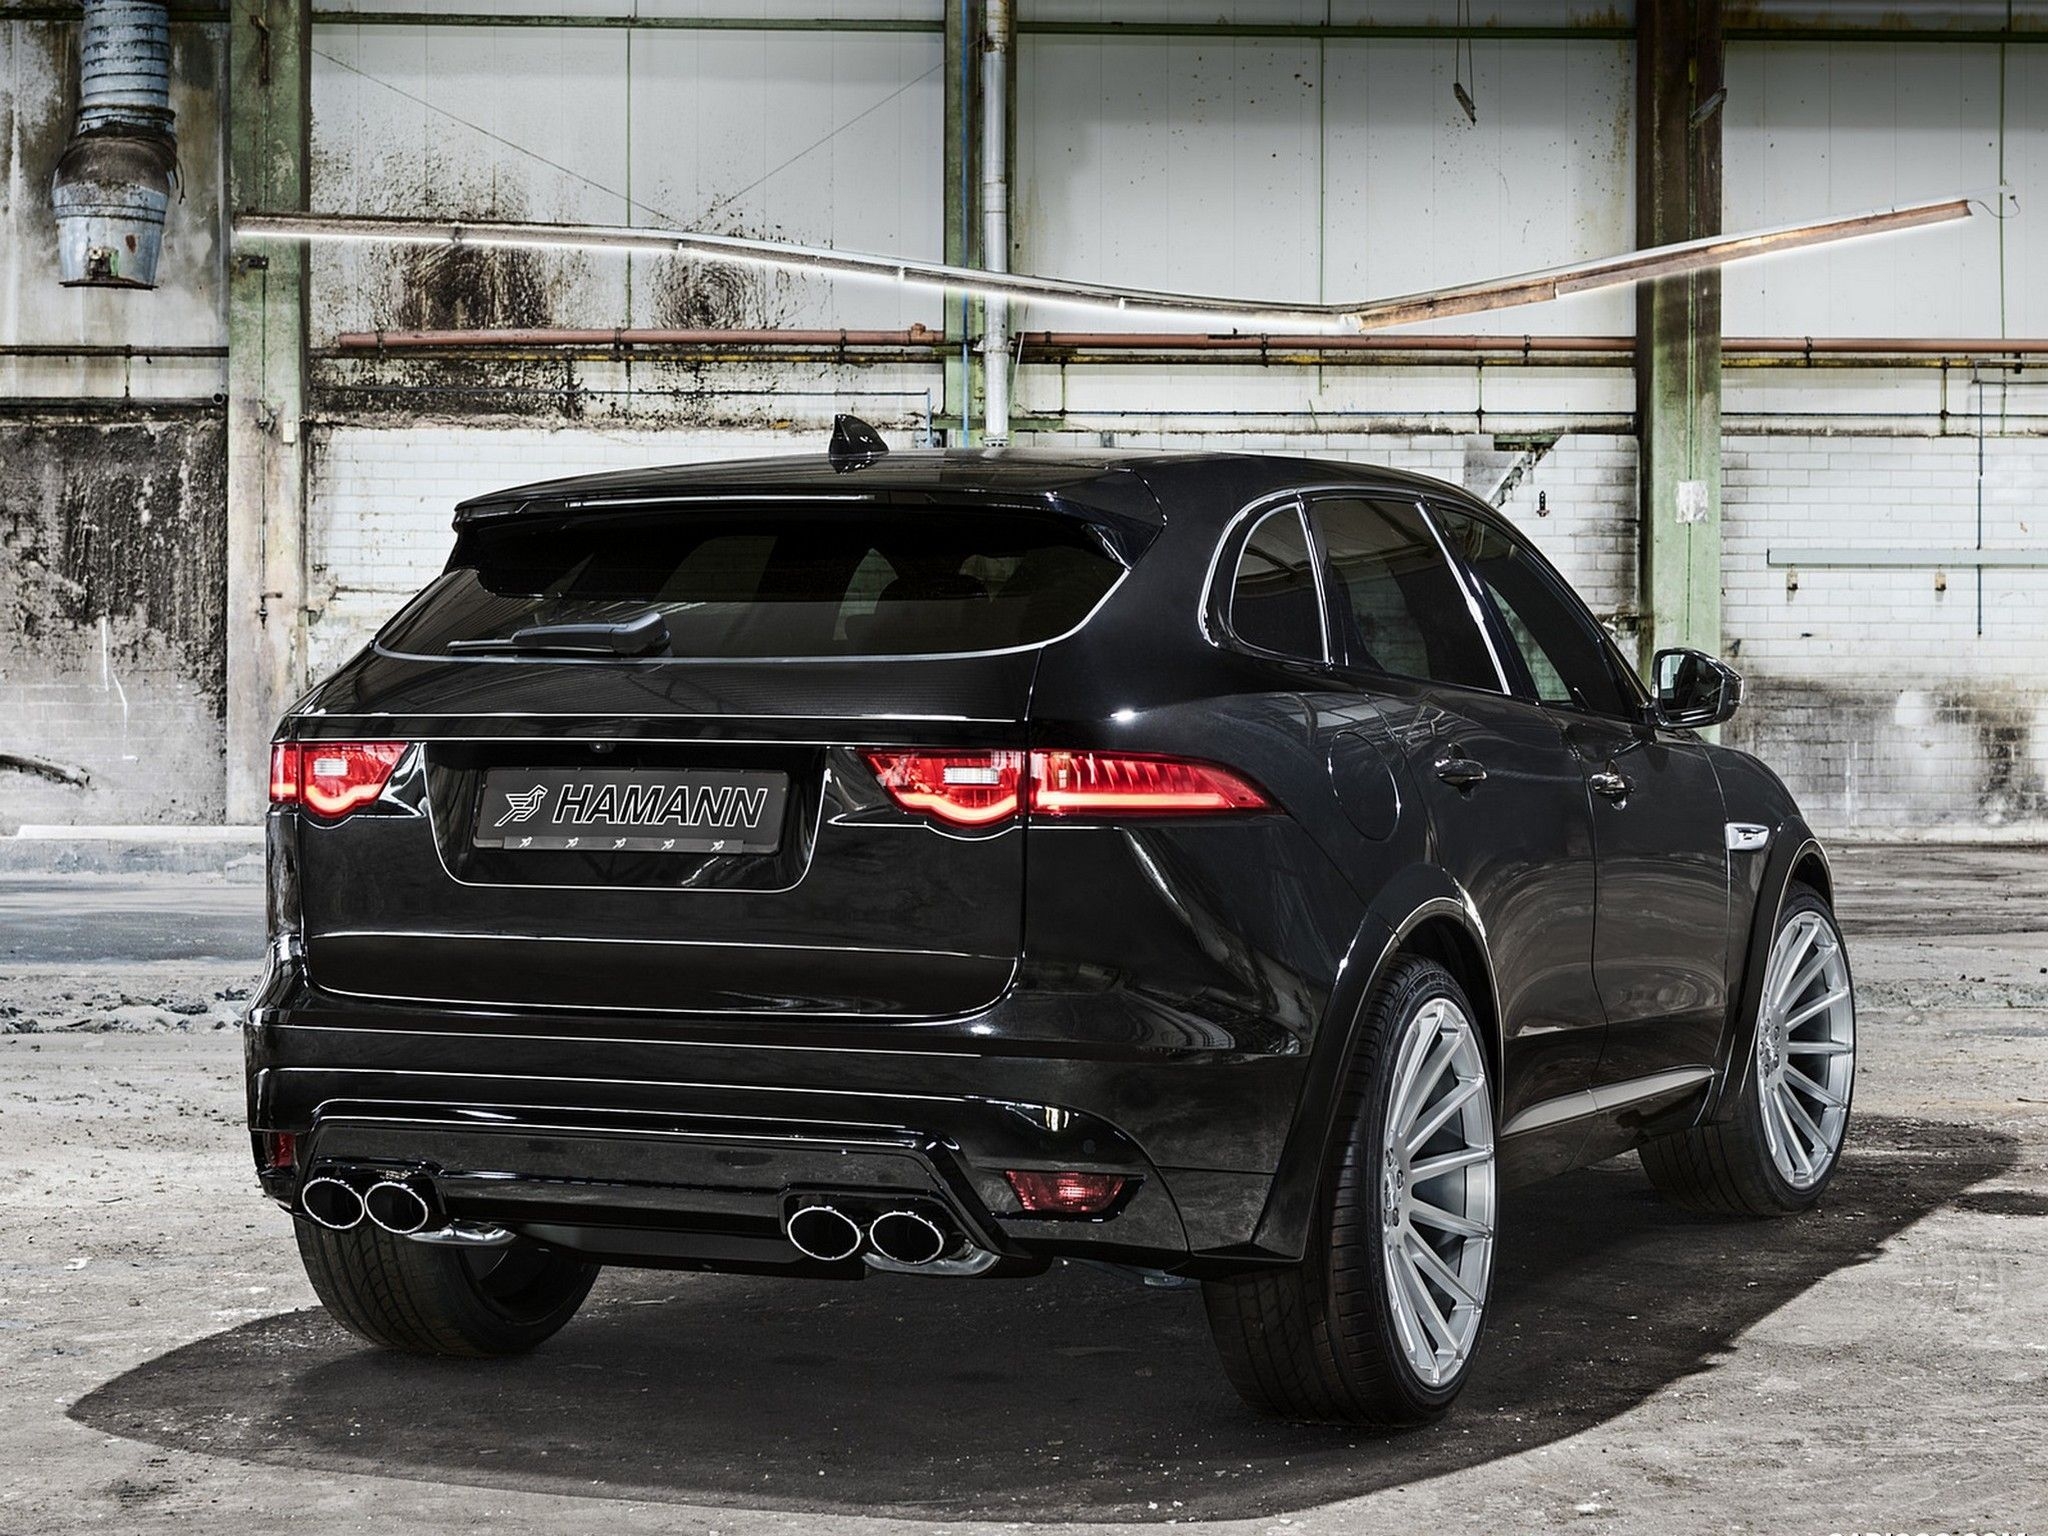 2017 hamann jaguar f pace le jaguar f pace 30d voit ainsi sa puissance passer de 300 340. Black Bedroom Furniture Sets. Home Design Ideas